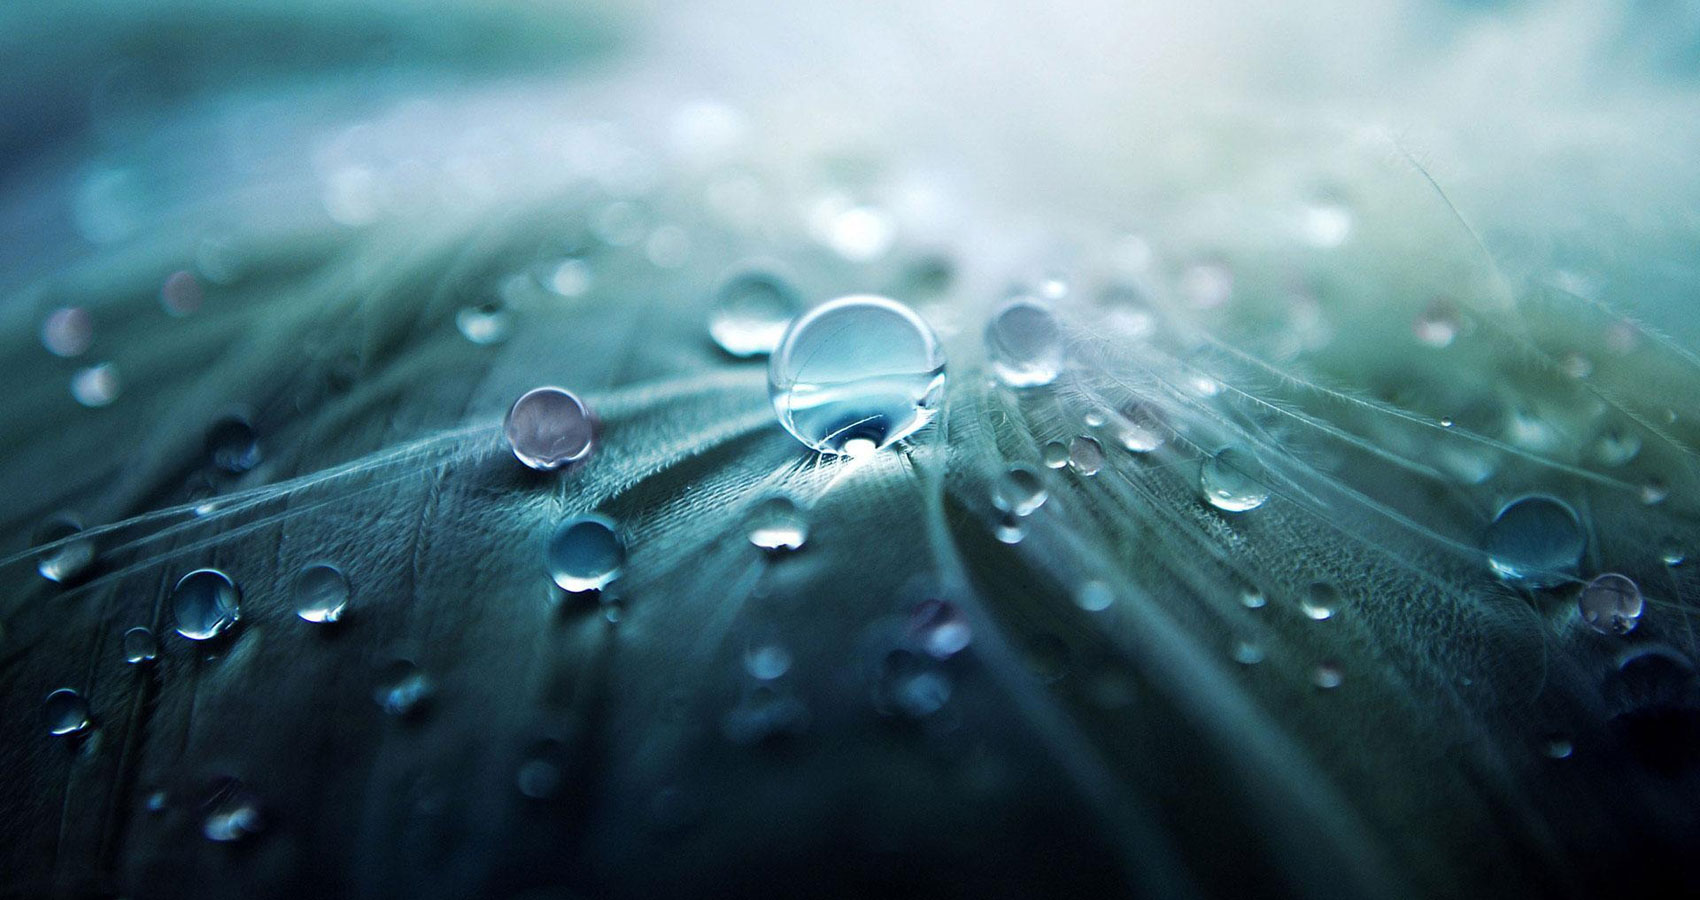 There Will Be Soft Rains, a poem by Sara Teasdale at Spillwords.com